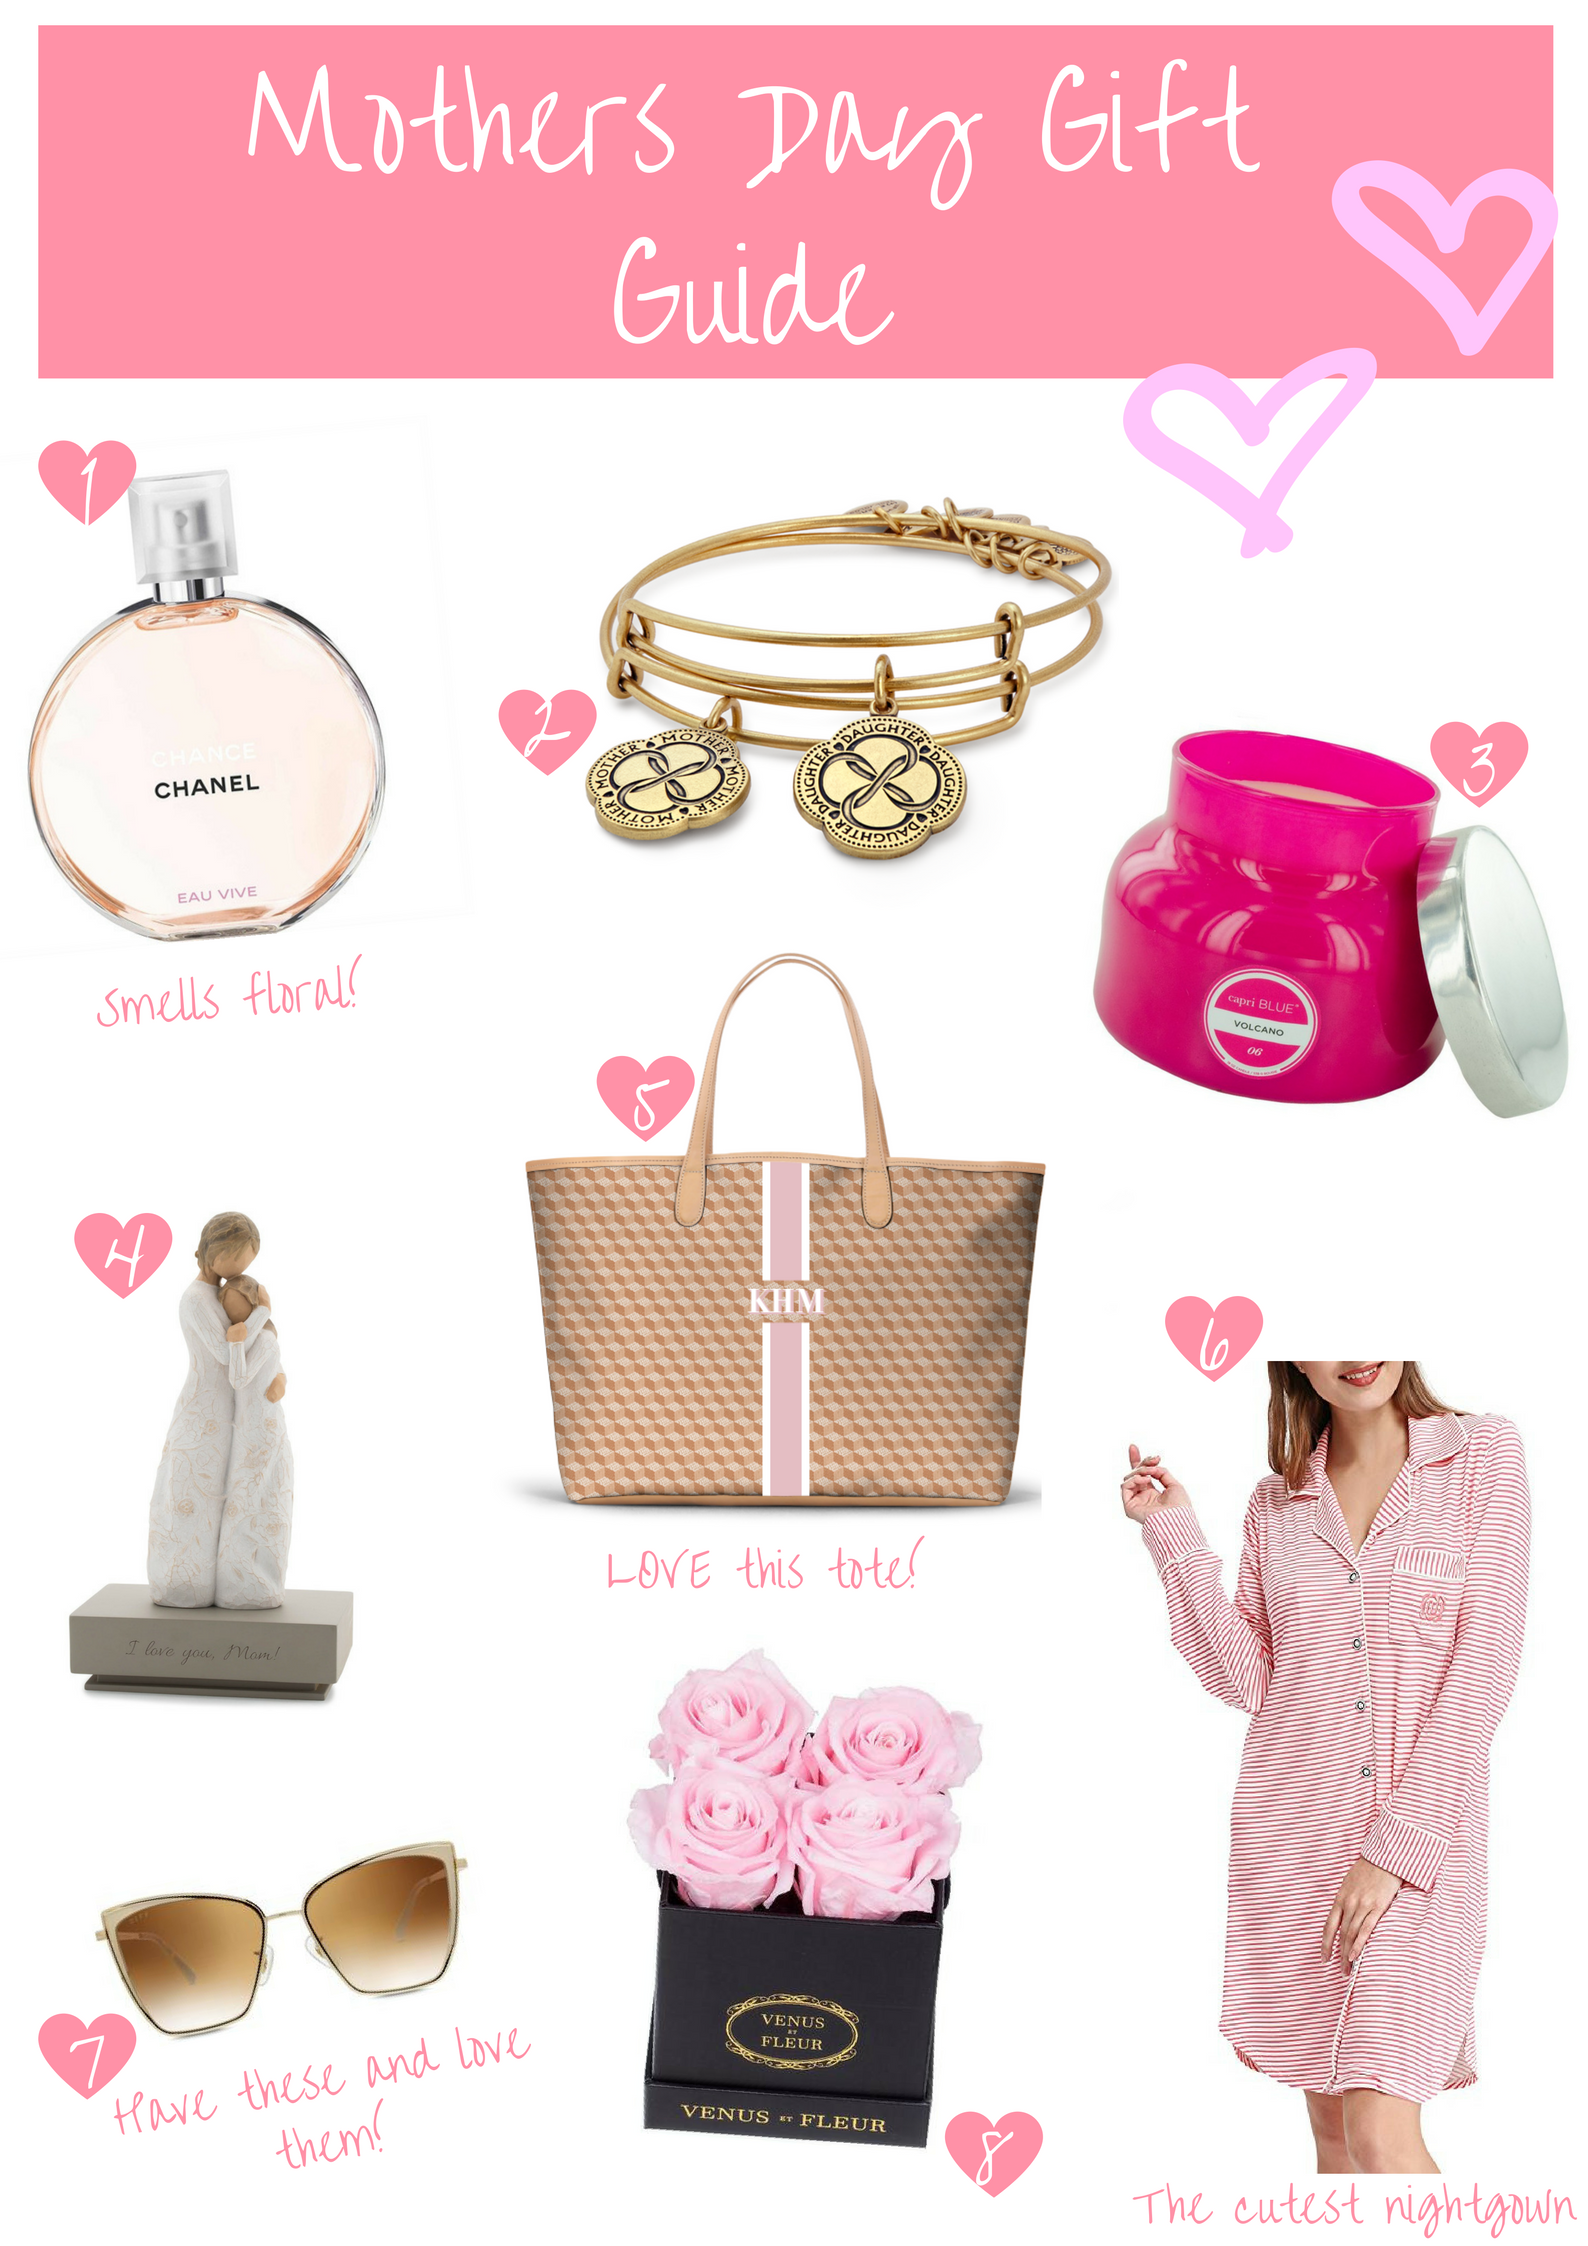 8 Sentimental Gift Ideas Your Mom Will Love For Mother's Day!